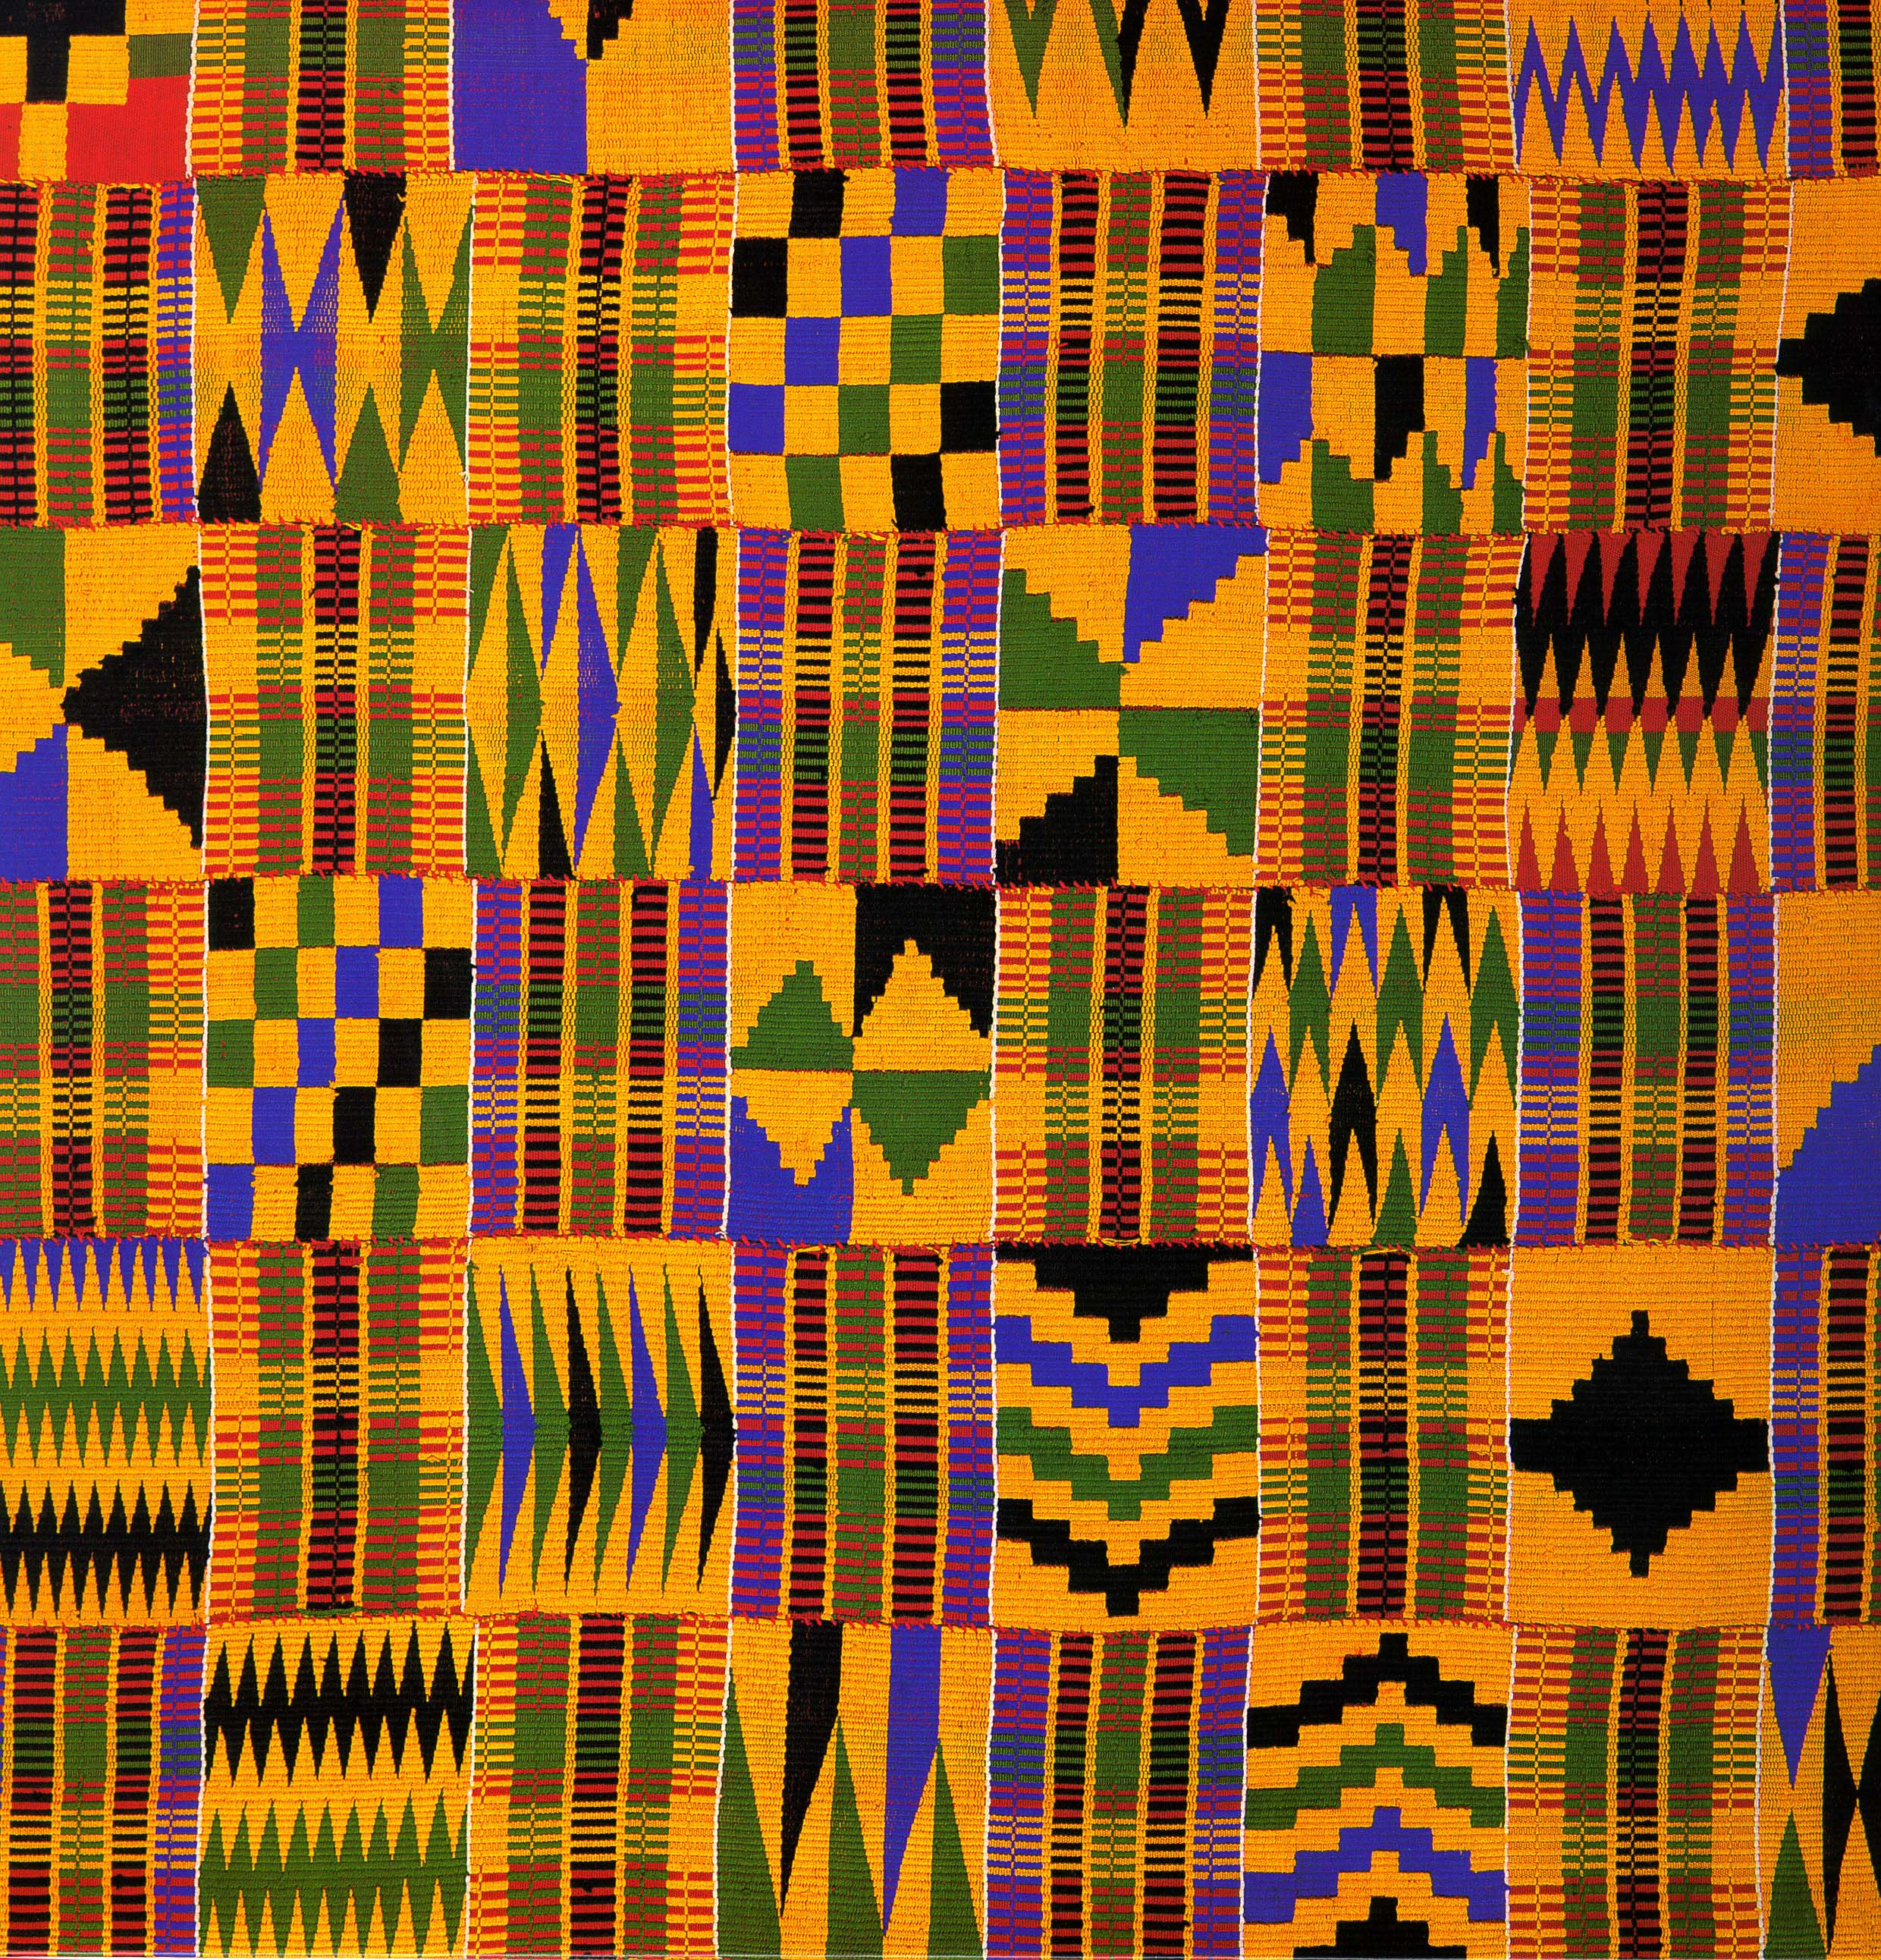 African Fabric Images | Kaggle